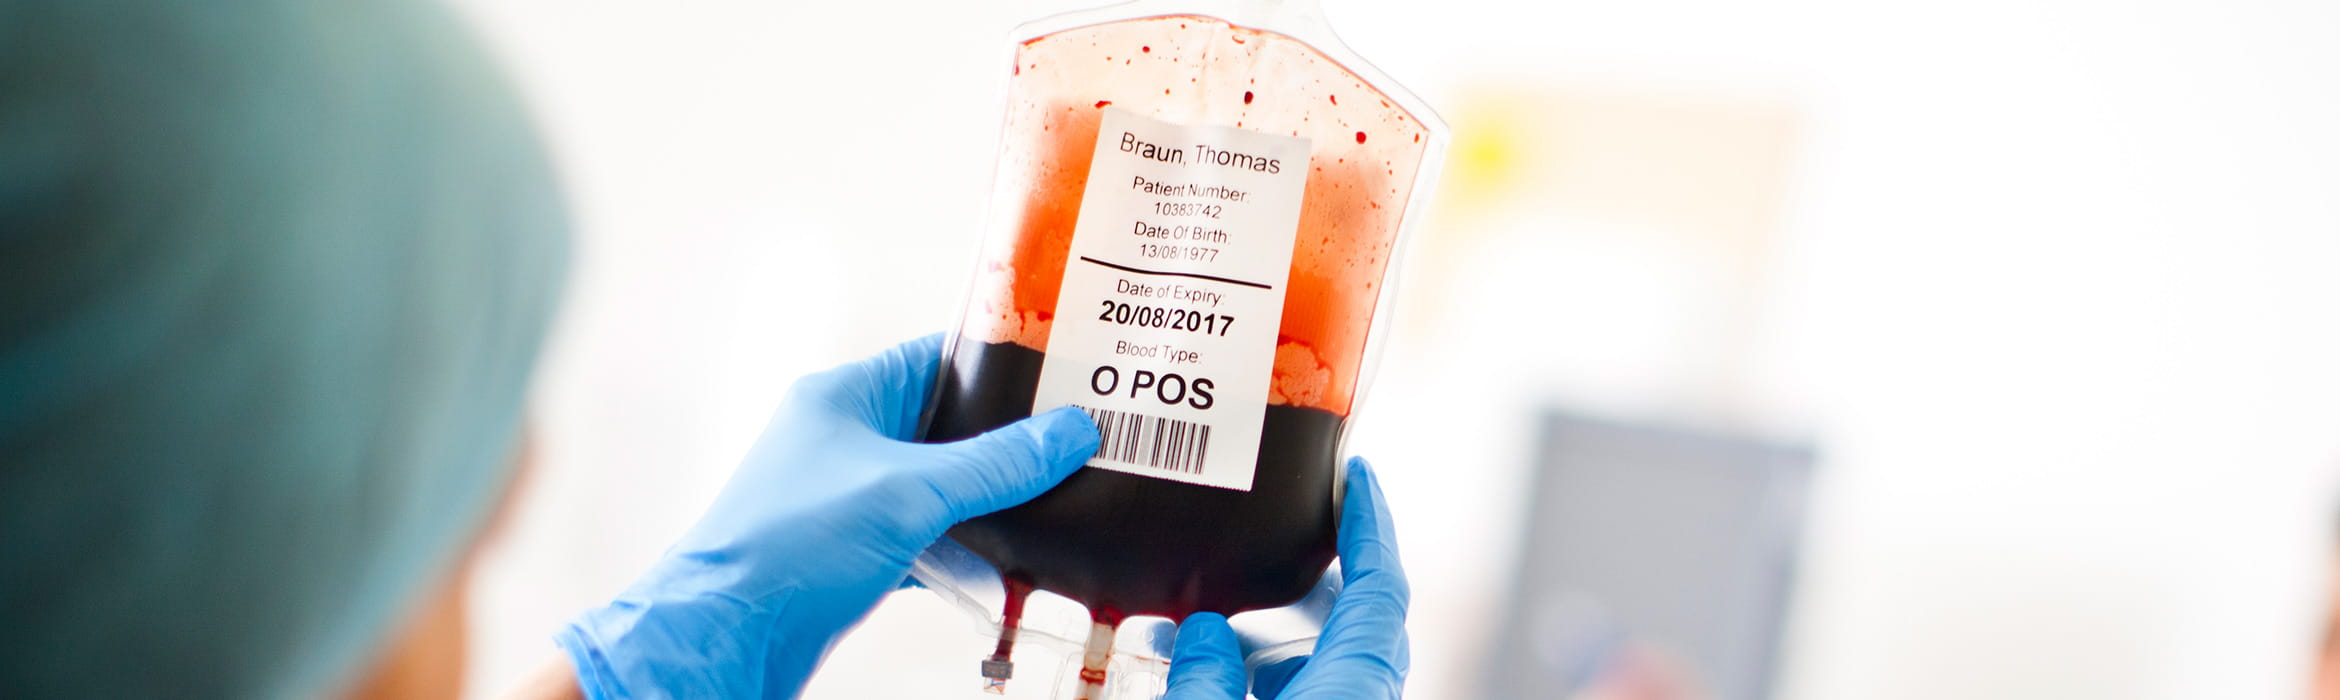 blood-bag-clinical-care